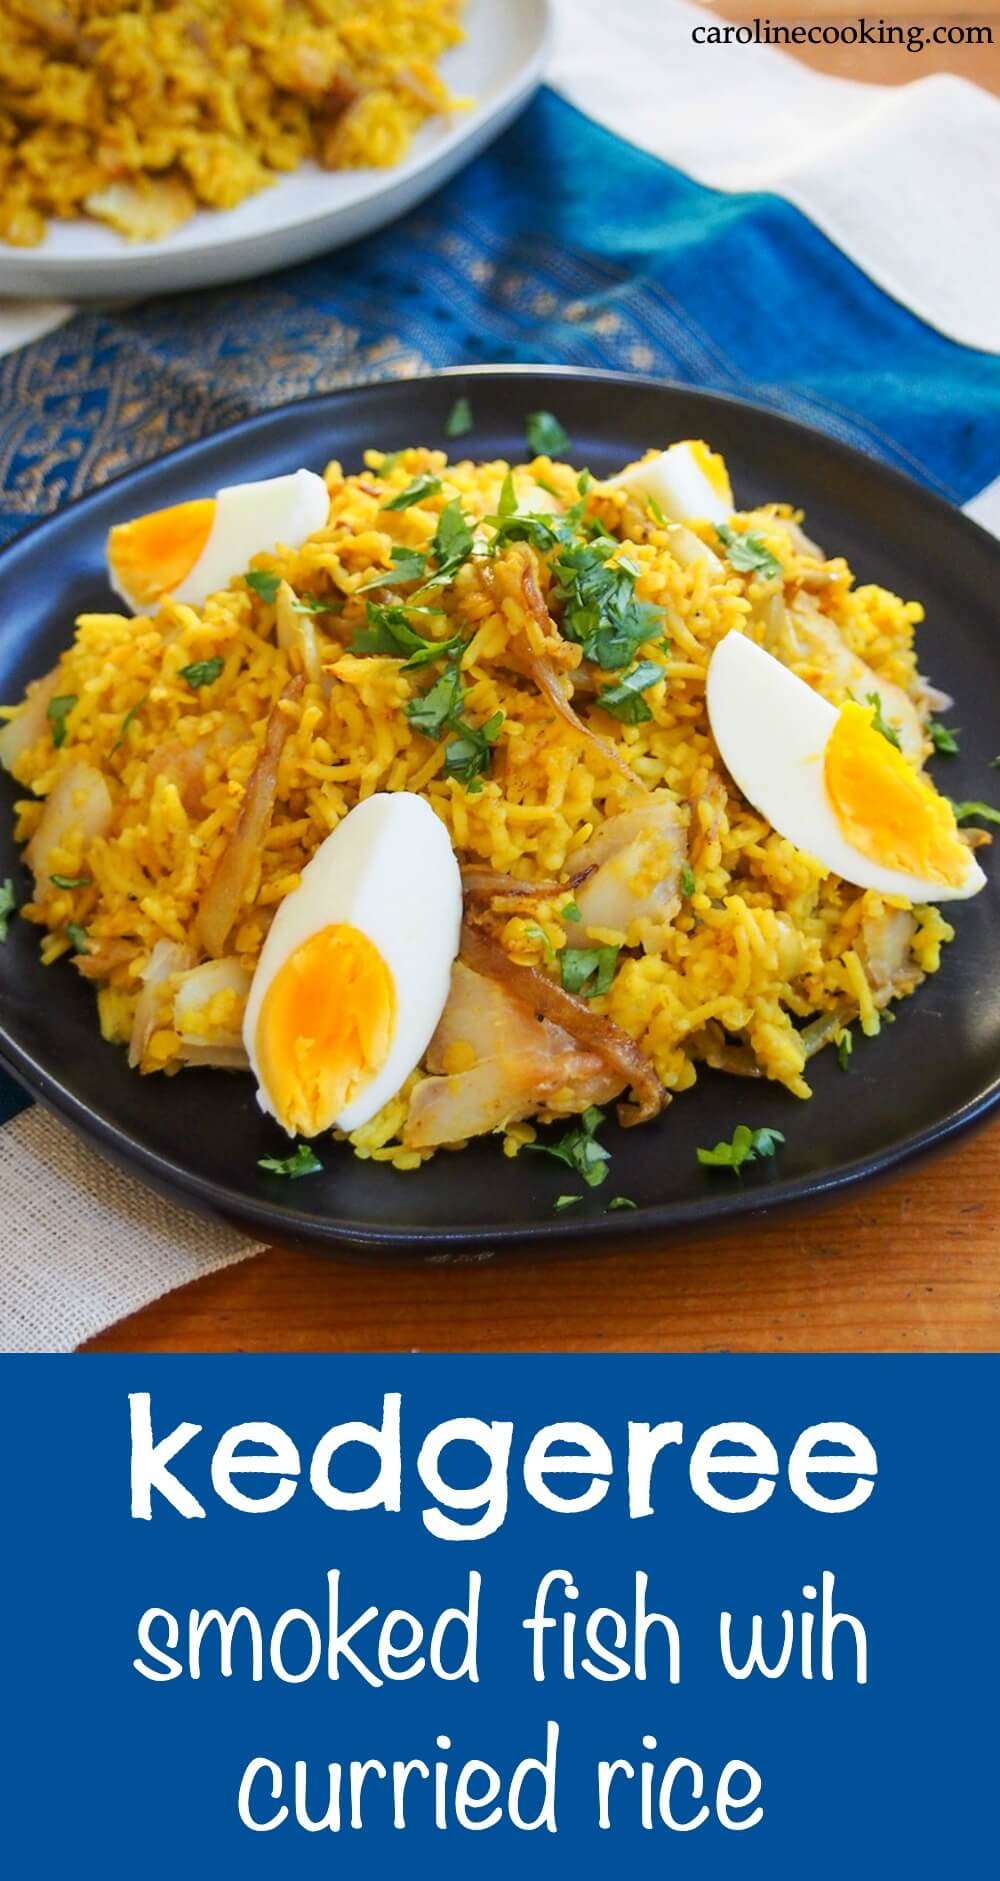 Kedgeree is a hearty and comforting mix of smoked fish and rice with curry flavors. It's a tasty dish that you could enjoy any time of day. #smokedfish #rice